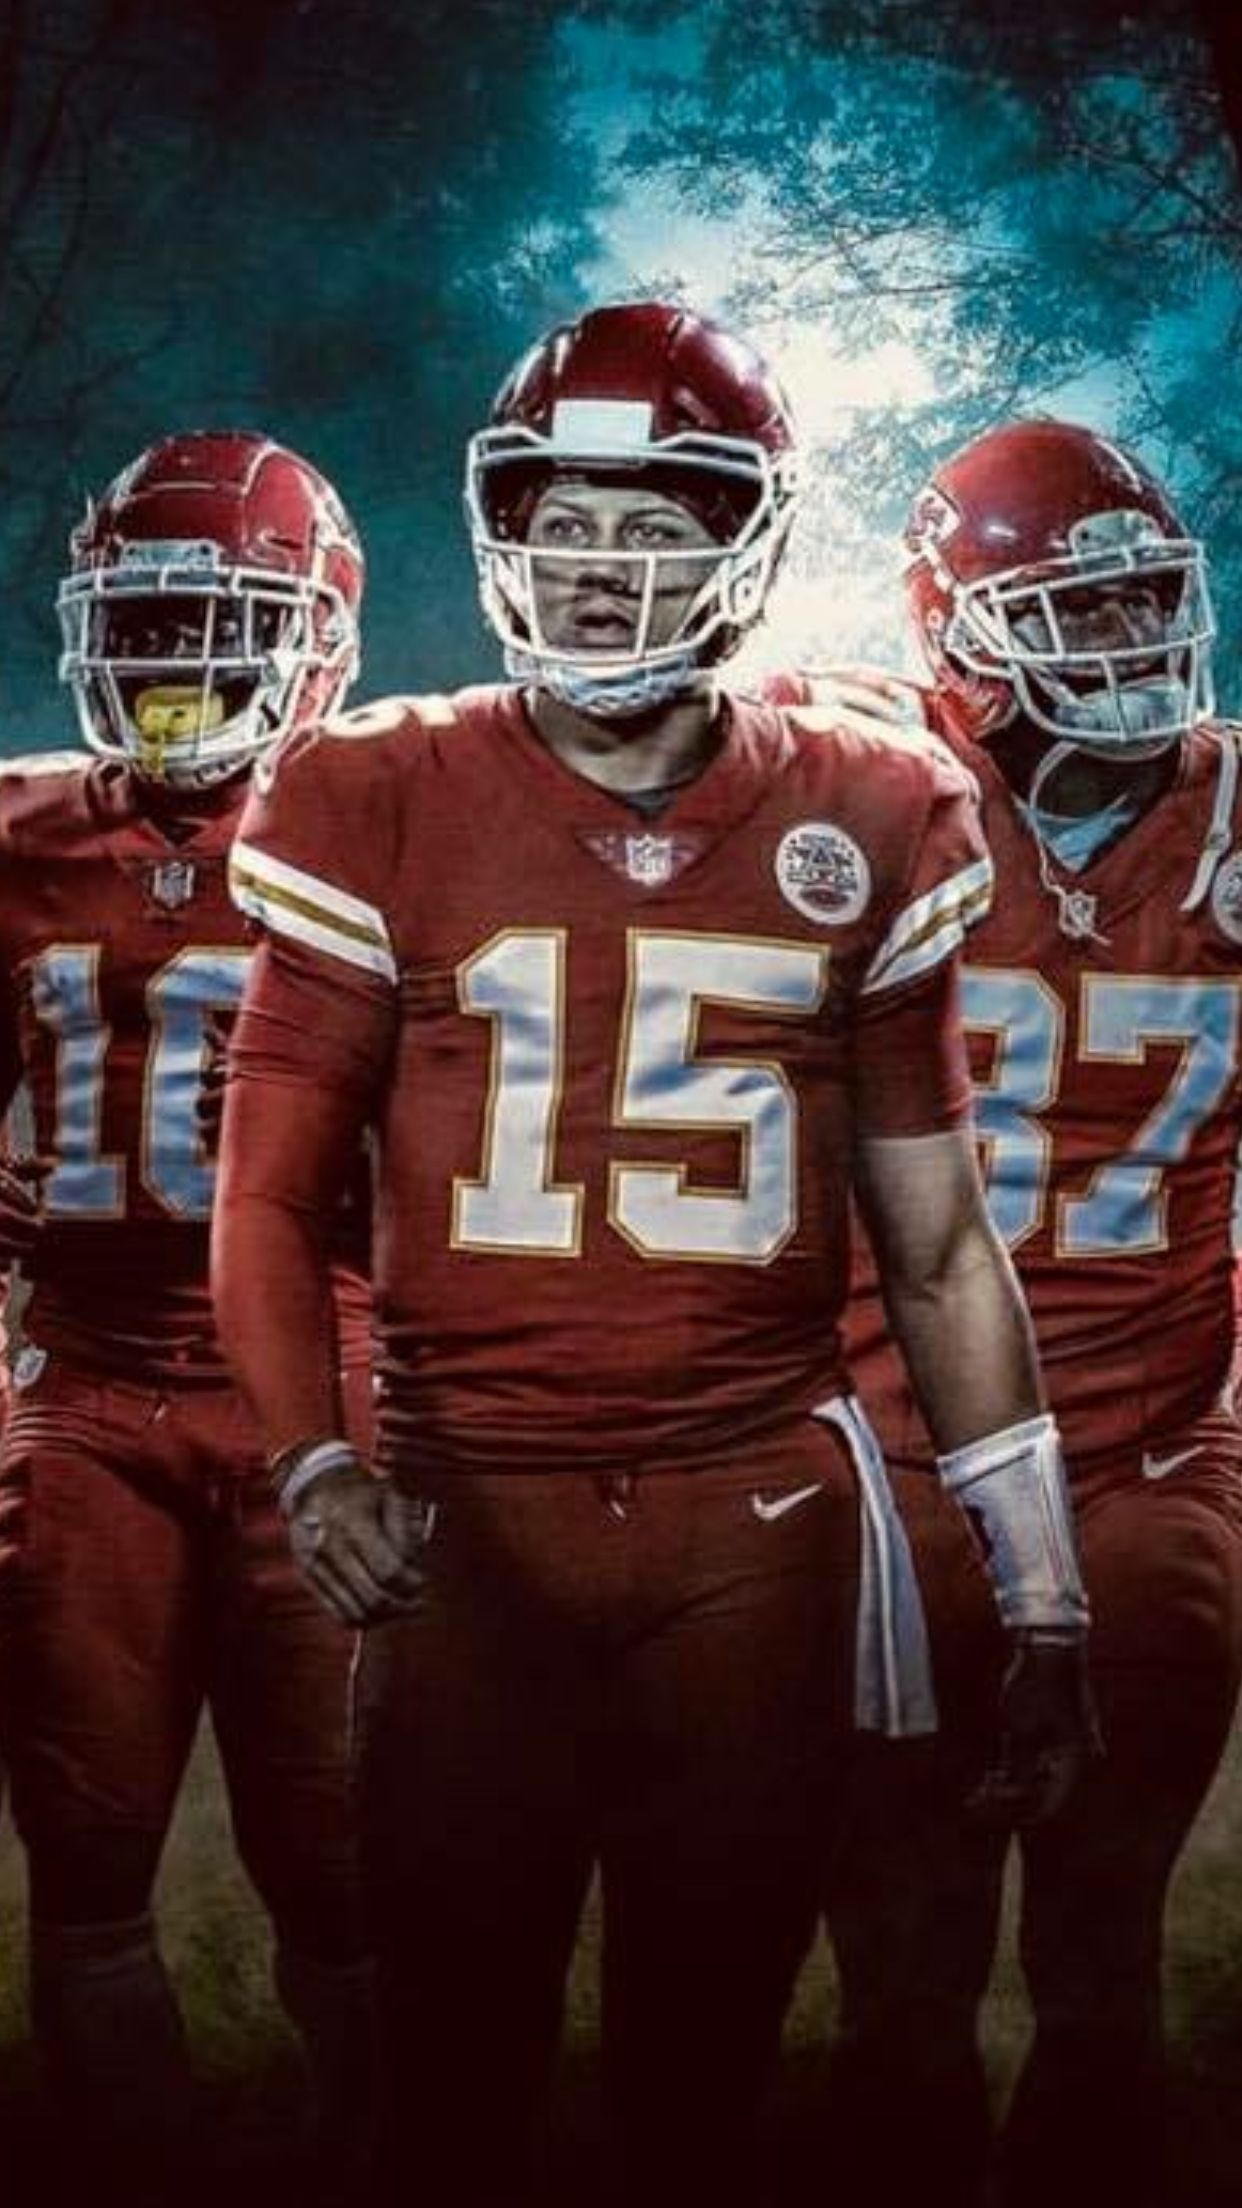 CHIEFS!!!!! Kc chiefs football, Kansas city chiefs football